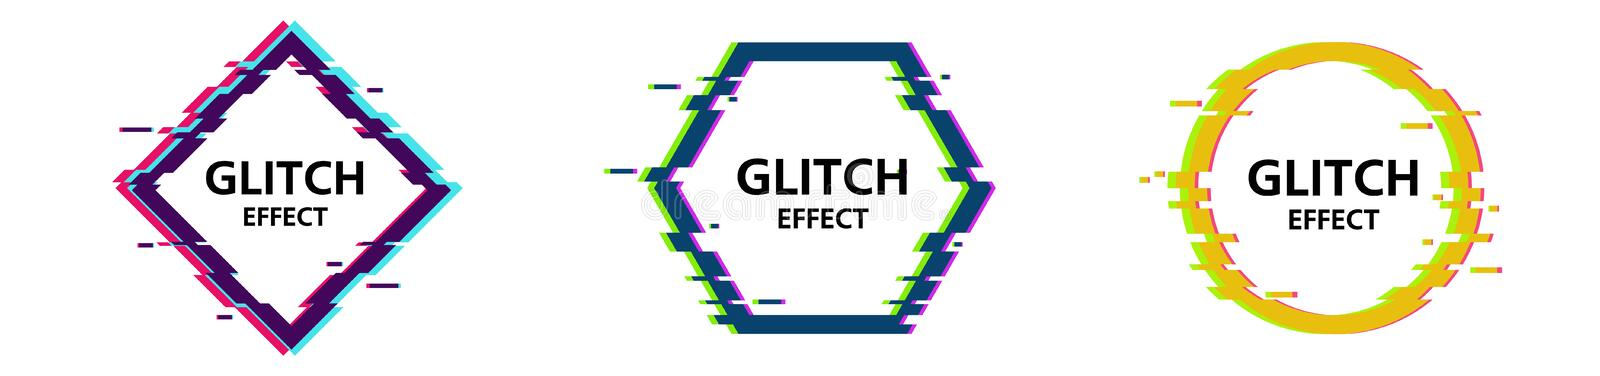 Vector glitch frames set. Geometric shapes with Tv distortion effect. Dynamical colored forms and line. Gradient abstract banners with flowing liquid shapes royalty free illustration